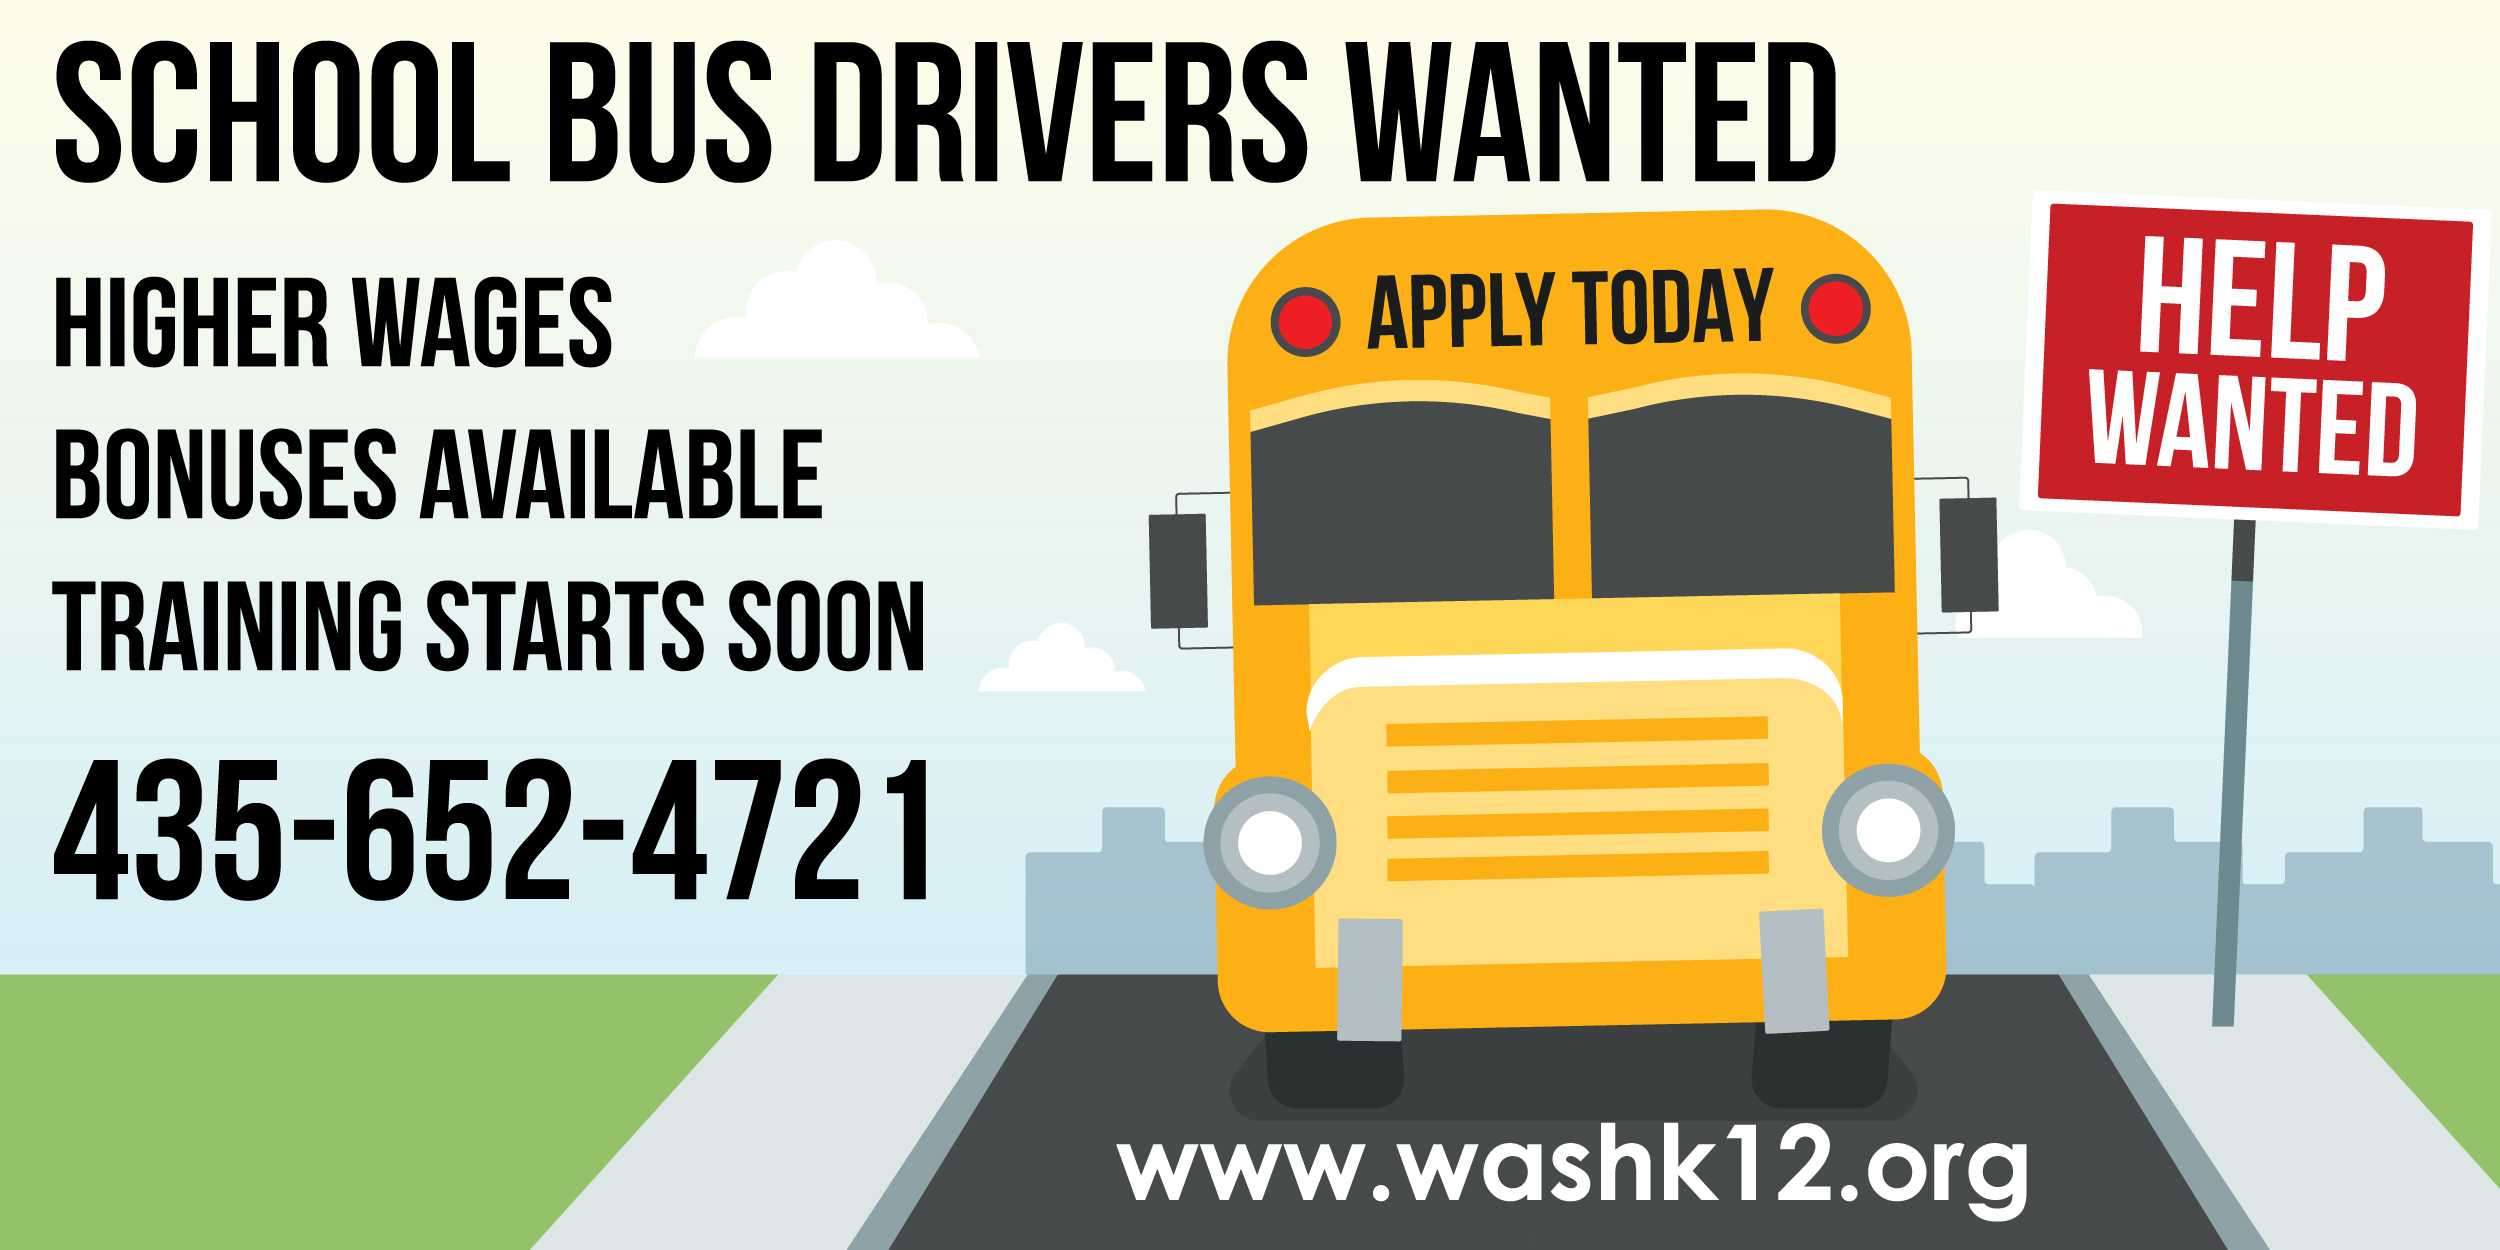 Cartoon bus on road next to help wanted sign advertising school bus drivers wanted.